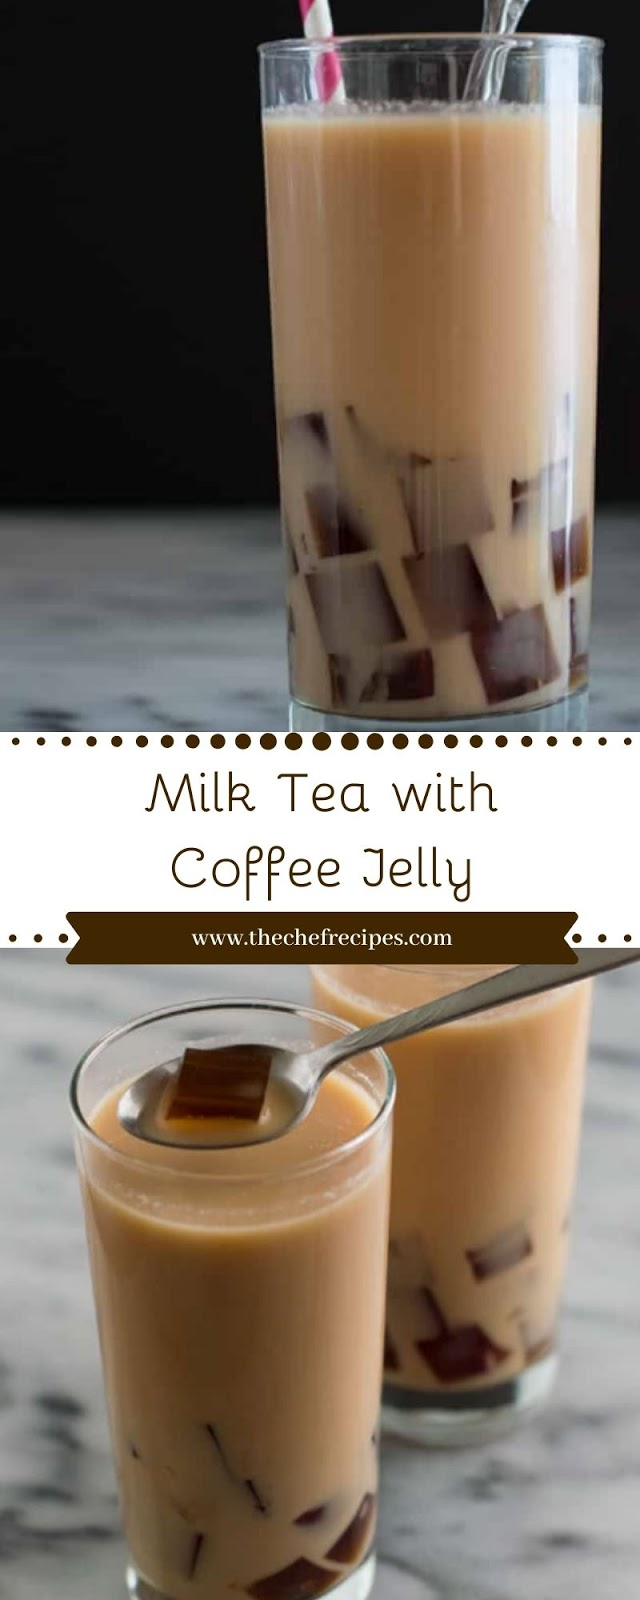 Milk Tea with Coffee Jelly